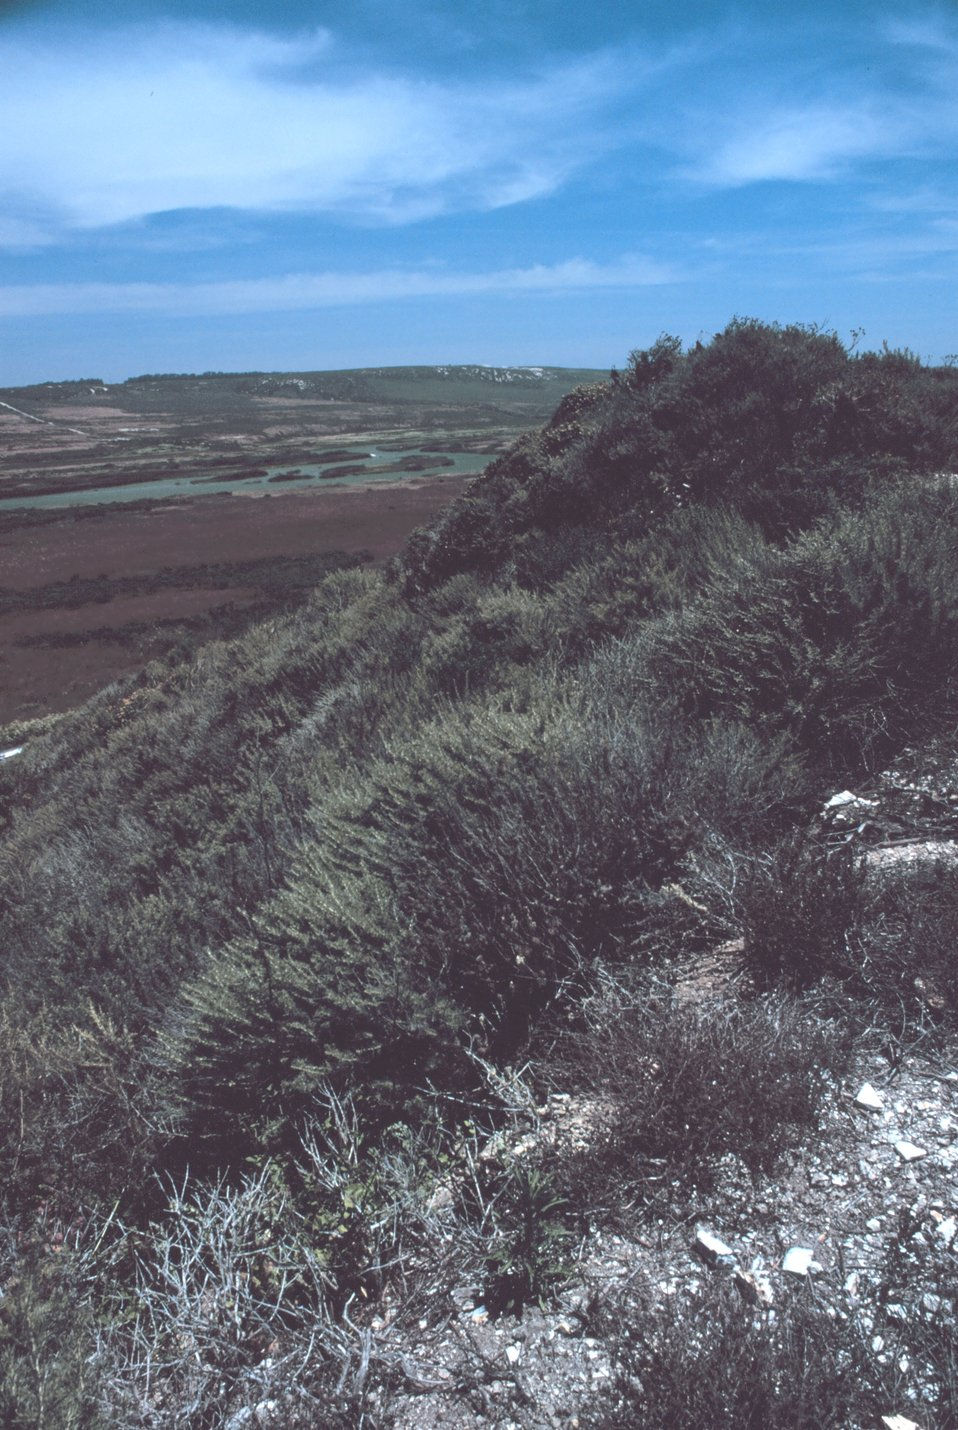 A vegetation covered dune and coastal wetlands near Vandenburg AFB